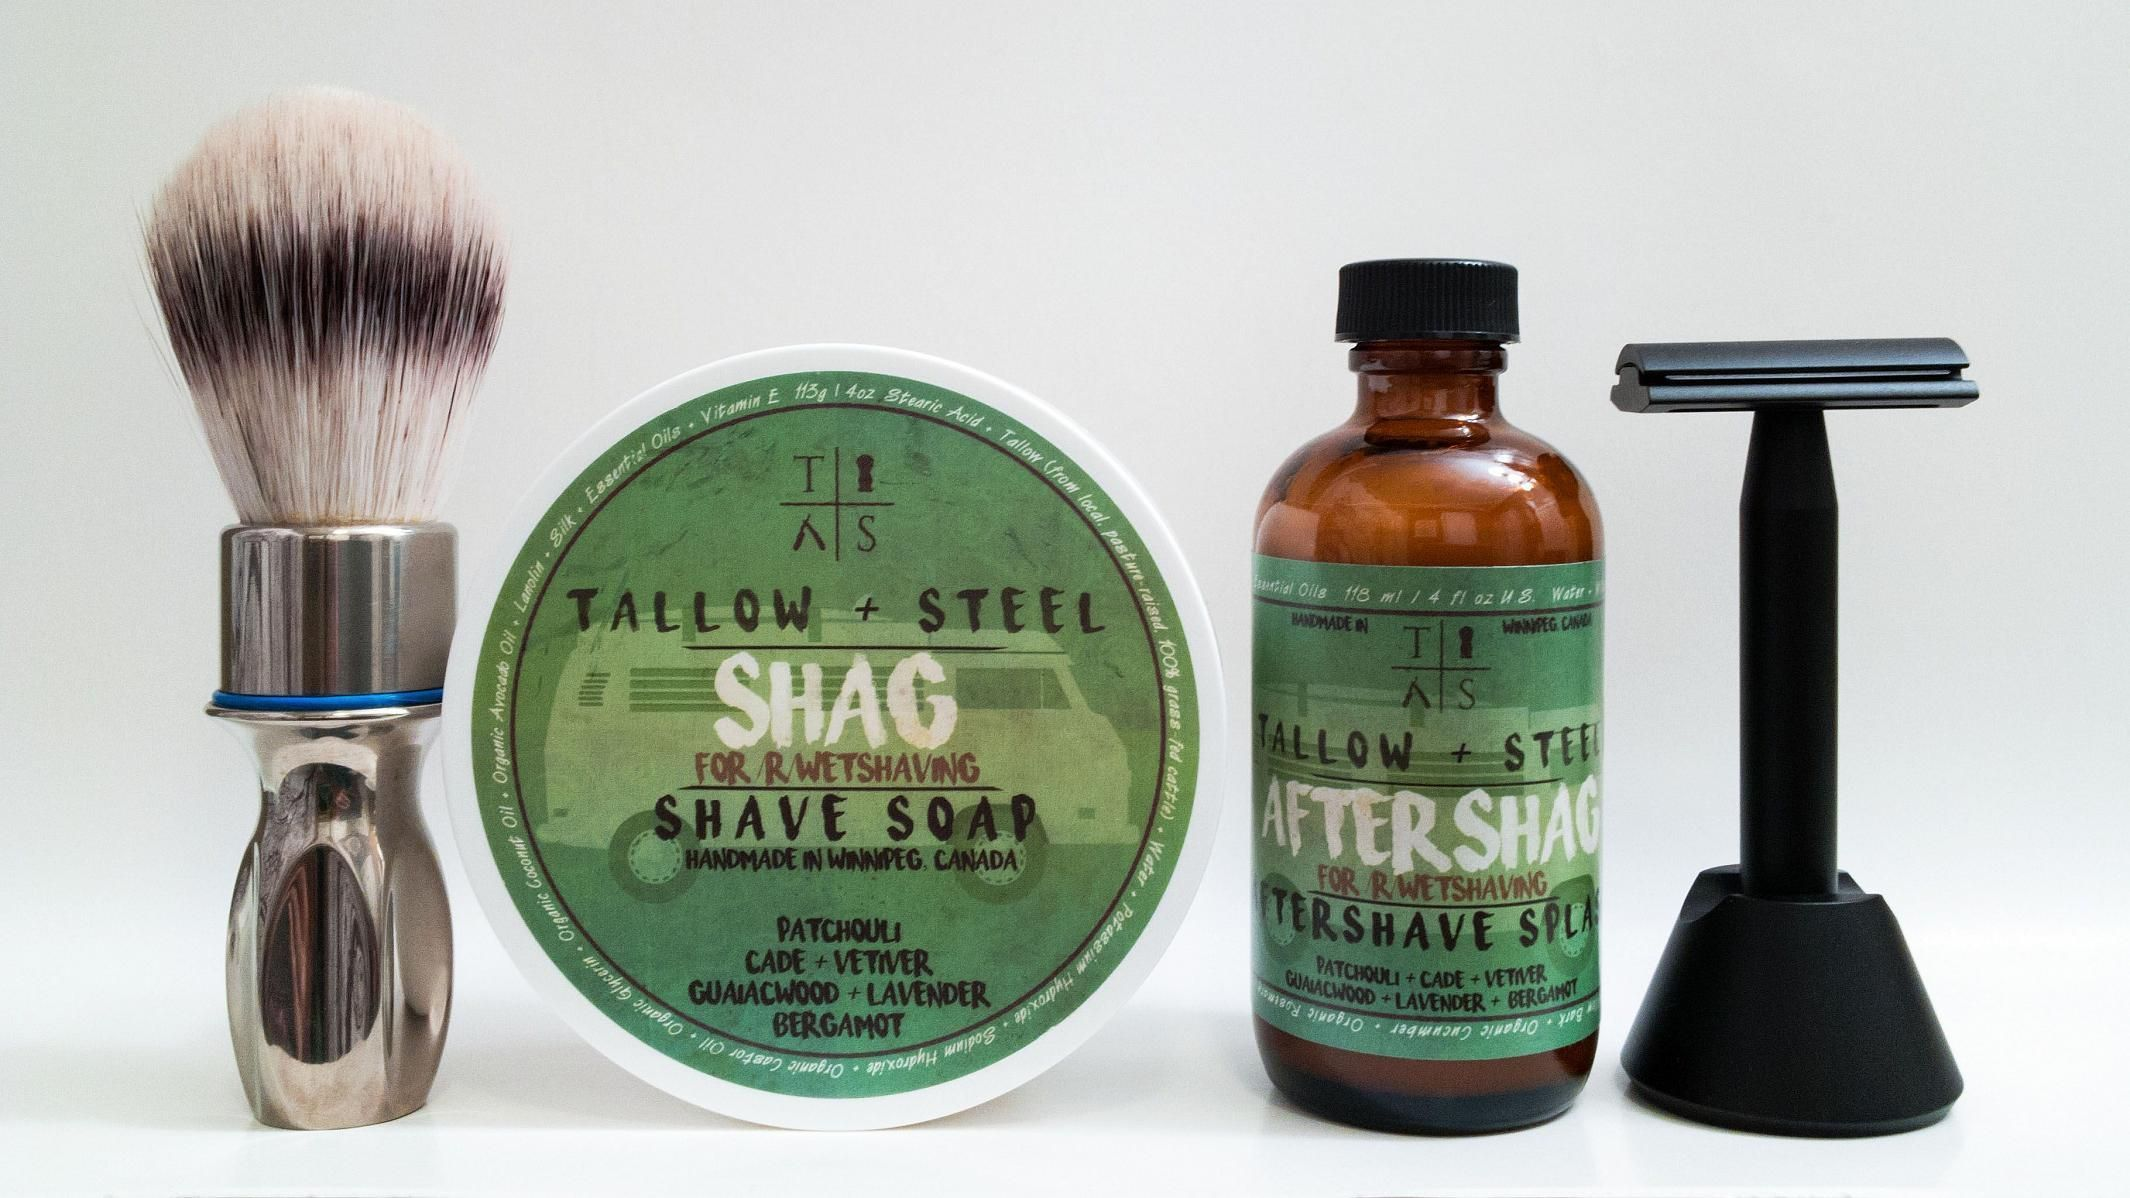 "Tallow + Steel ""Shag"""